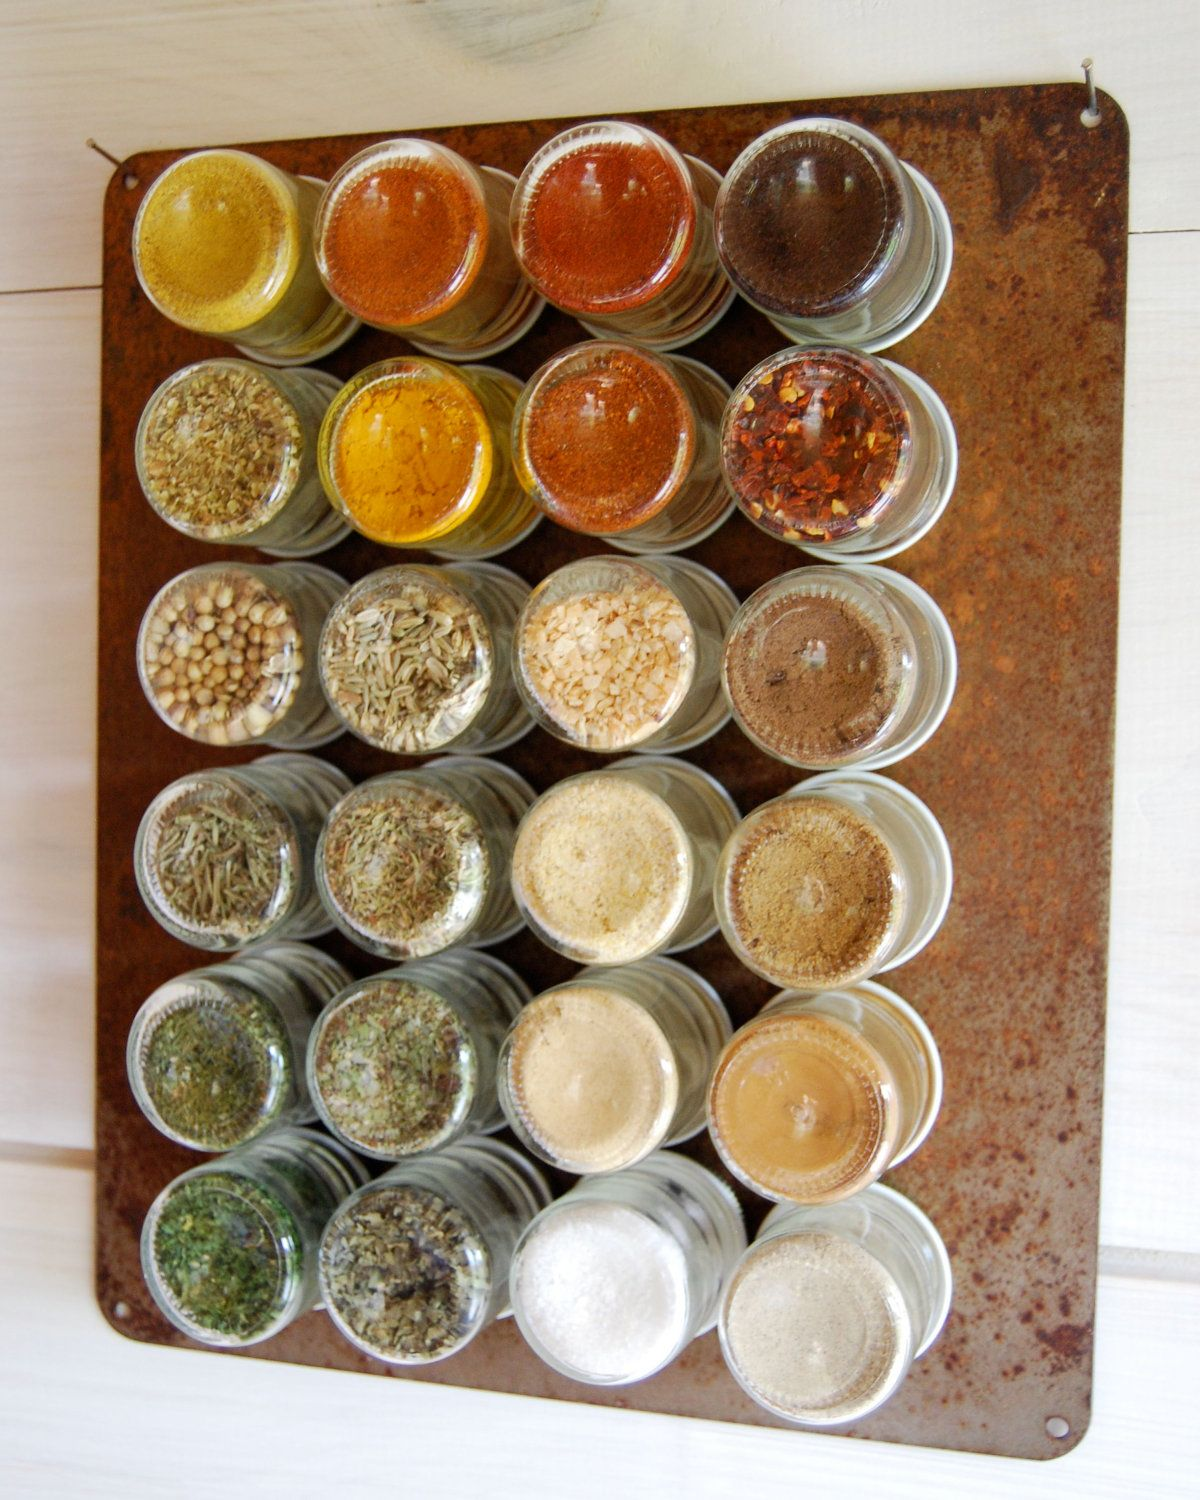 Organic Spice Rack Fair Rustic Everything Kit 24 Organic Spices Handstamped Magnetic Spice Inspiration Design